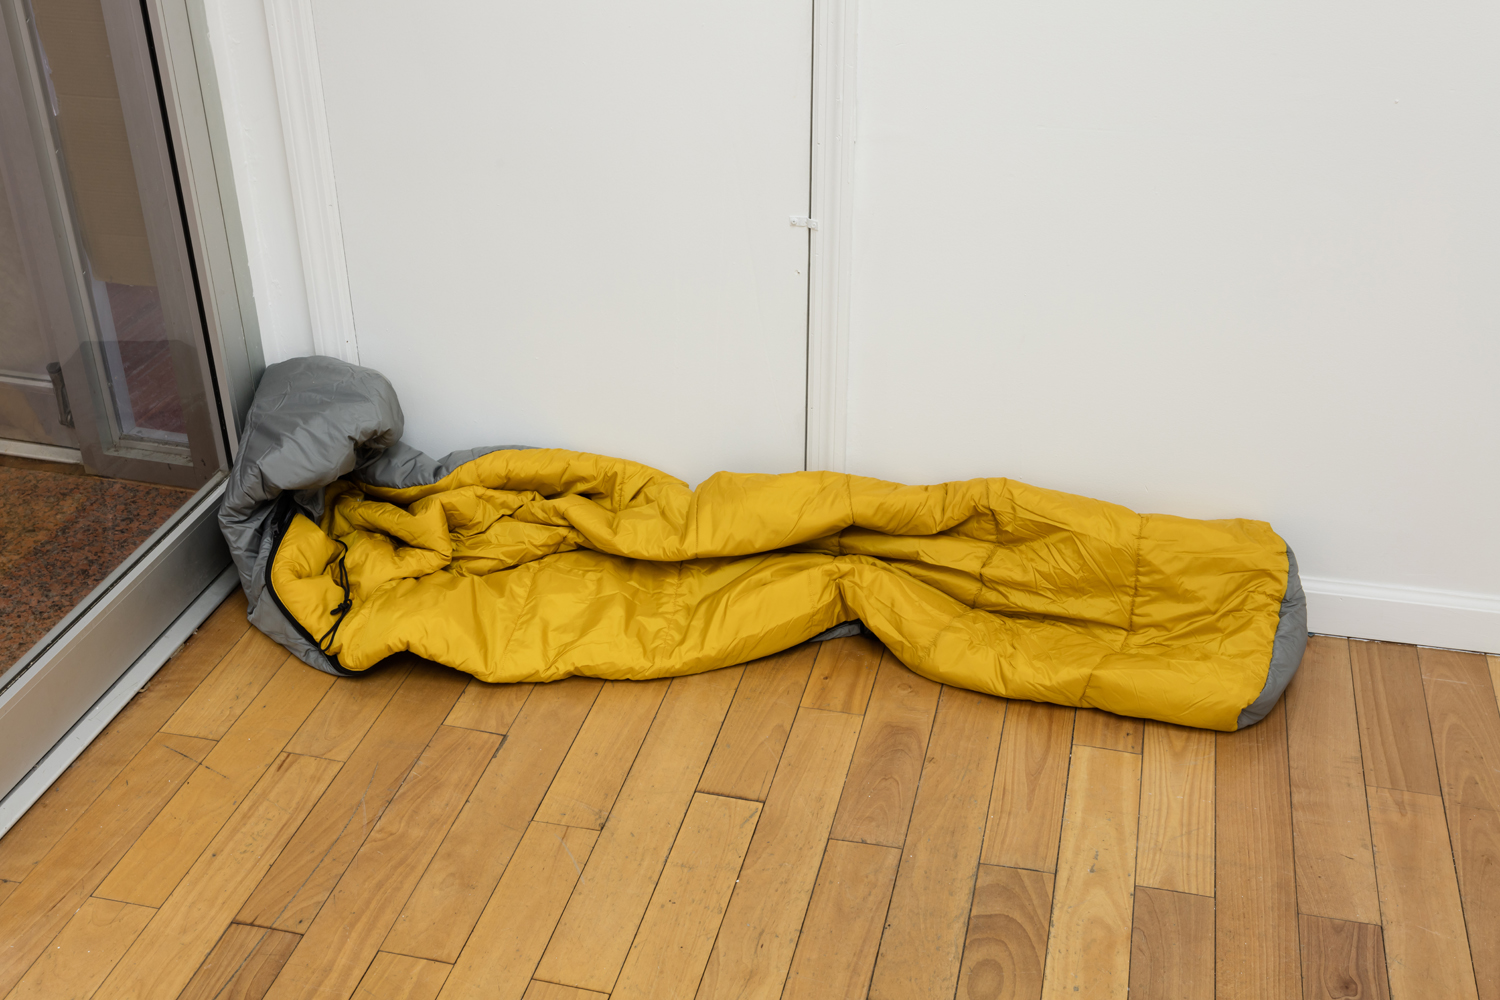 Phoebe Berglund,  The Sleeper,  2019. Nylon sleeping bag. Dimensions variable.